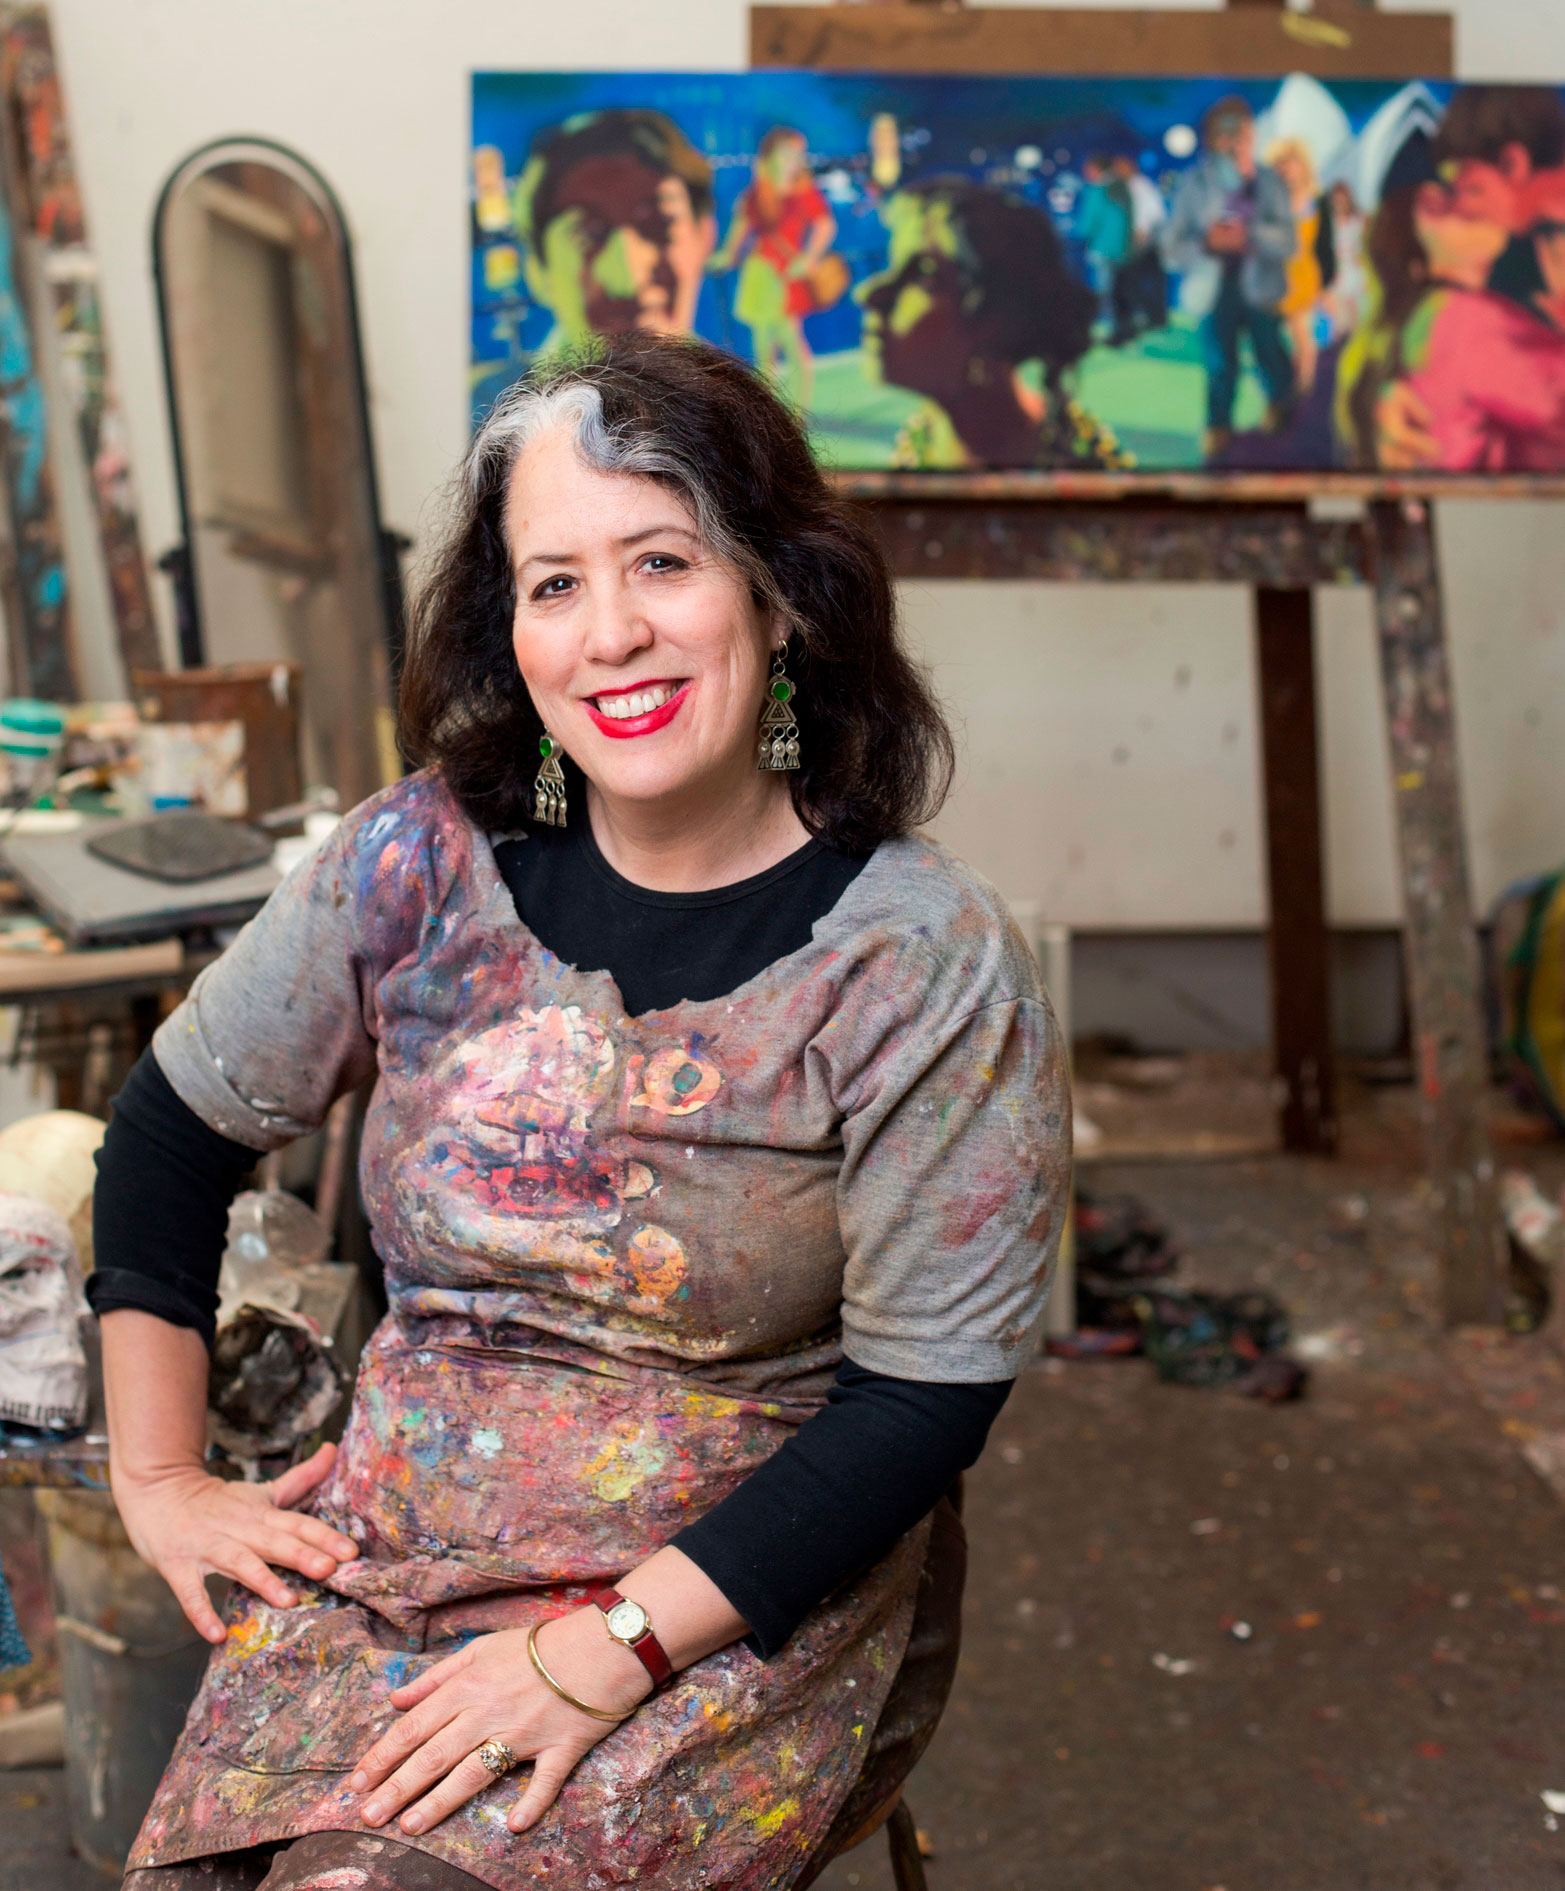 2017 Judge - Wendy Sharpe - Wendy Sharpe is one of Australia's most awarded artists. She lives and works in Sydney and Paris. Major awards include winning; The Sulman Prize, 2 travelling Scholarships, The Portia Geach Memorial Award (twice) and The Archibald Prize. Major commissions include; an Olympic pool size mural for Cook and Philip Park Aquatic Centre Sydney,a commission by the Australian War Memorial and an Australian Official Artist to East Timor 1999 (the 1st woman since WW2). Wendy has also had commissions to draw the Australian ballet. She has been awarded many international artist residencies in Paris (twice), Egypt, Mexico, China and two Antarctica residencies. Wendy has been a Finalist in the Sulman Prize - Art Gallery of New South Wales, 12 times and a Finalist in the Archibald Prize - Art Gallery of New South Wales, 6 times. She has held over 46 solo exhibitions around Australia and internationally.www.wendysharpe.com